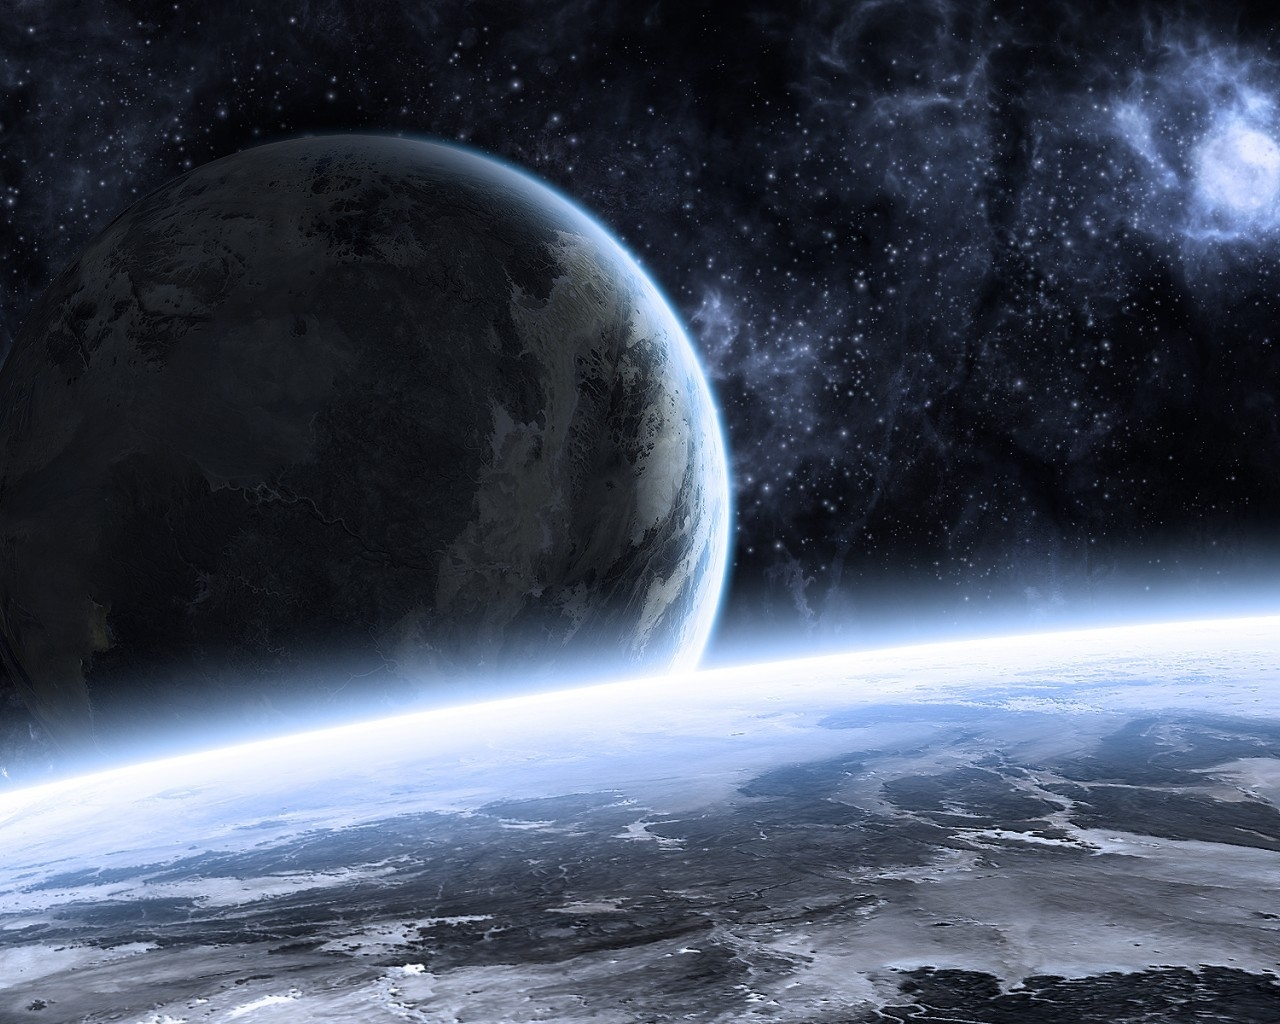 Beautiful Space Landscape for 1280 x 1024 resolution